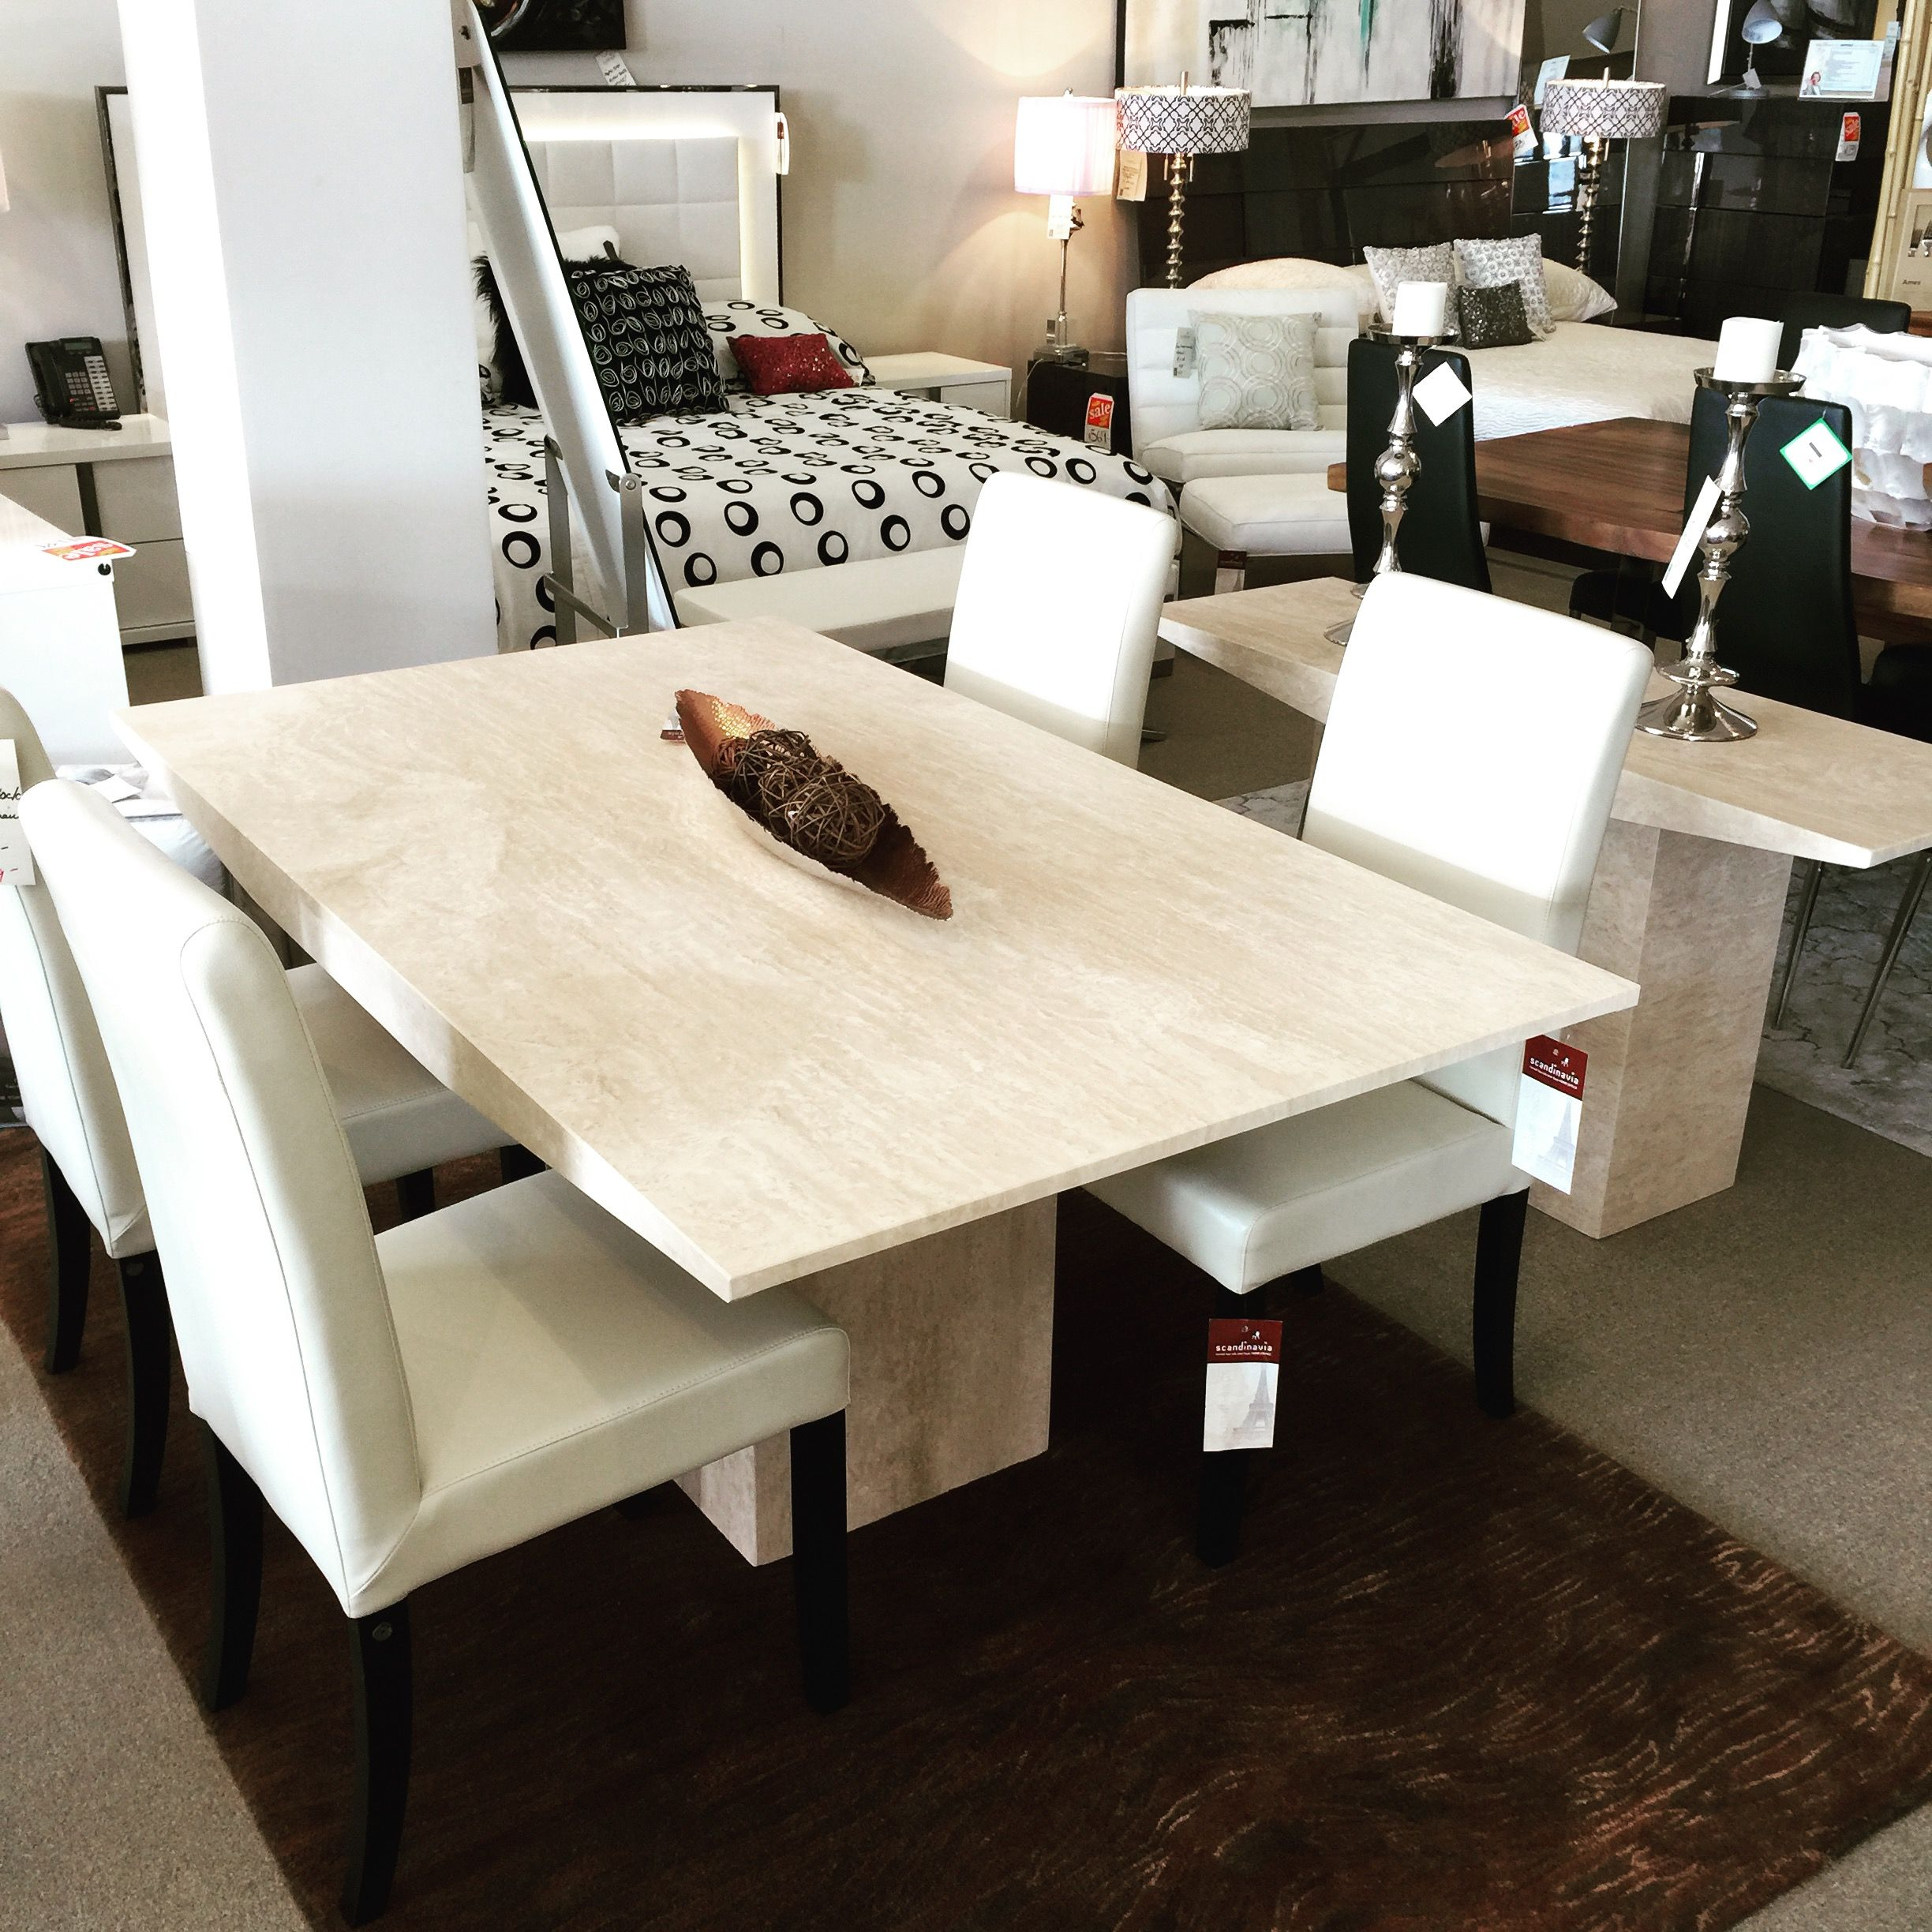 Furniture · Monaco Marble Dining Table Scandinavia Inc Metairie New Orleans  Louisiana Contemporary Modern Furniture